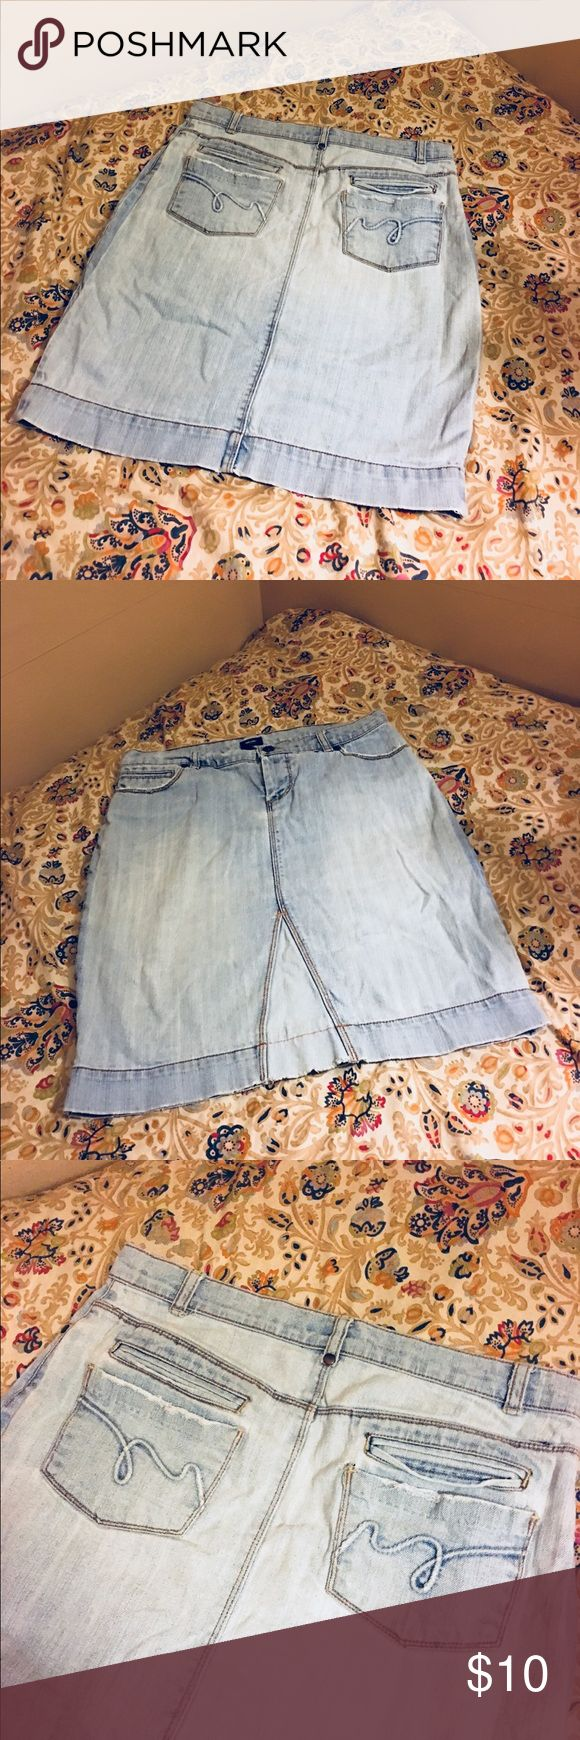 Distressed Jean Skirt Waist 16 inches Size 2 Distressed Jean Skirt Size 2  Waist 16 inches  Length 20 1/2 inches Mossimo Supply Co Skirts Midi